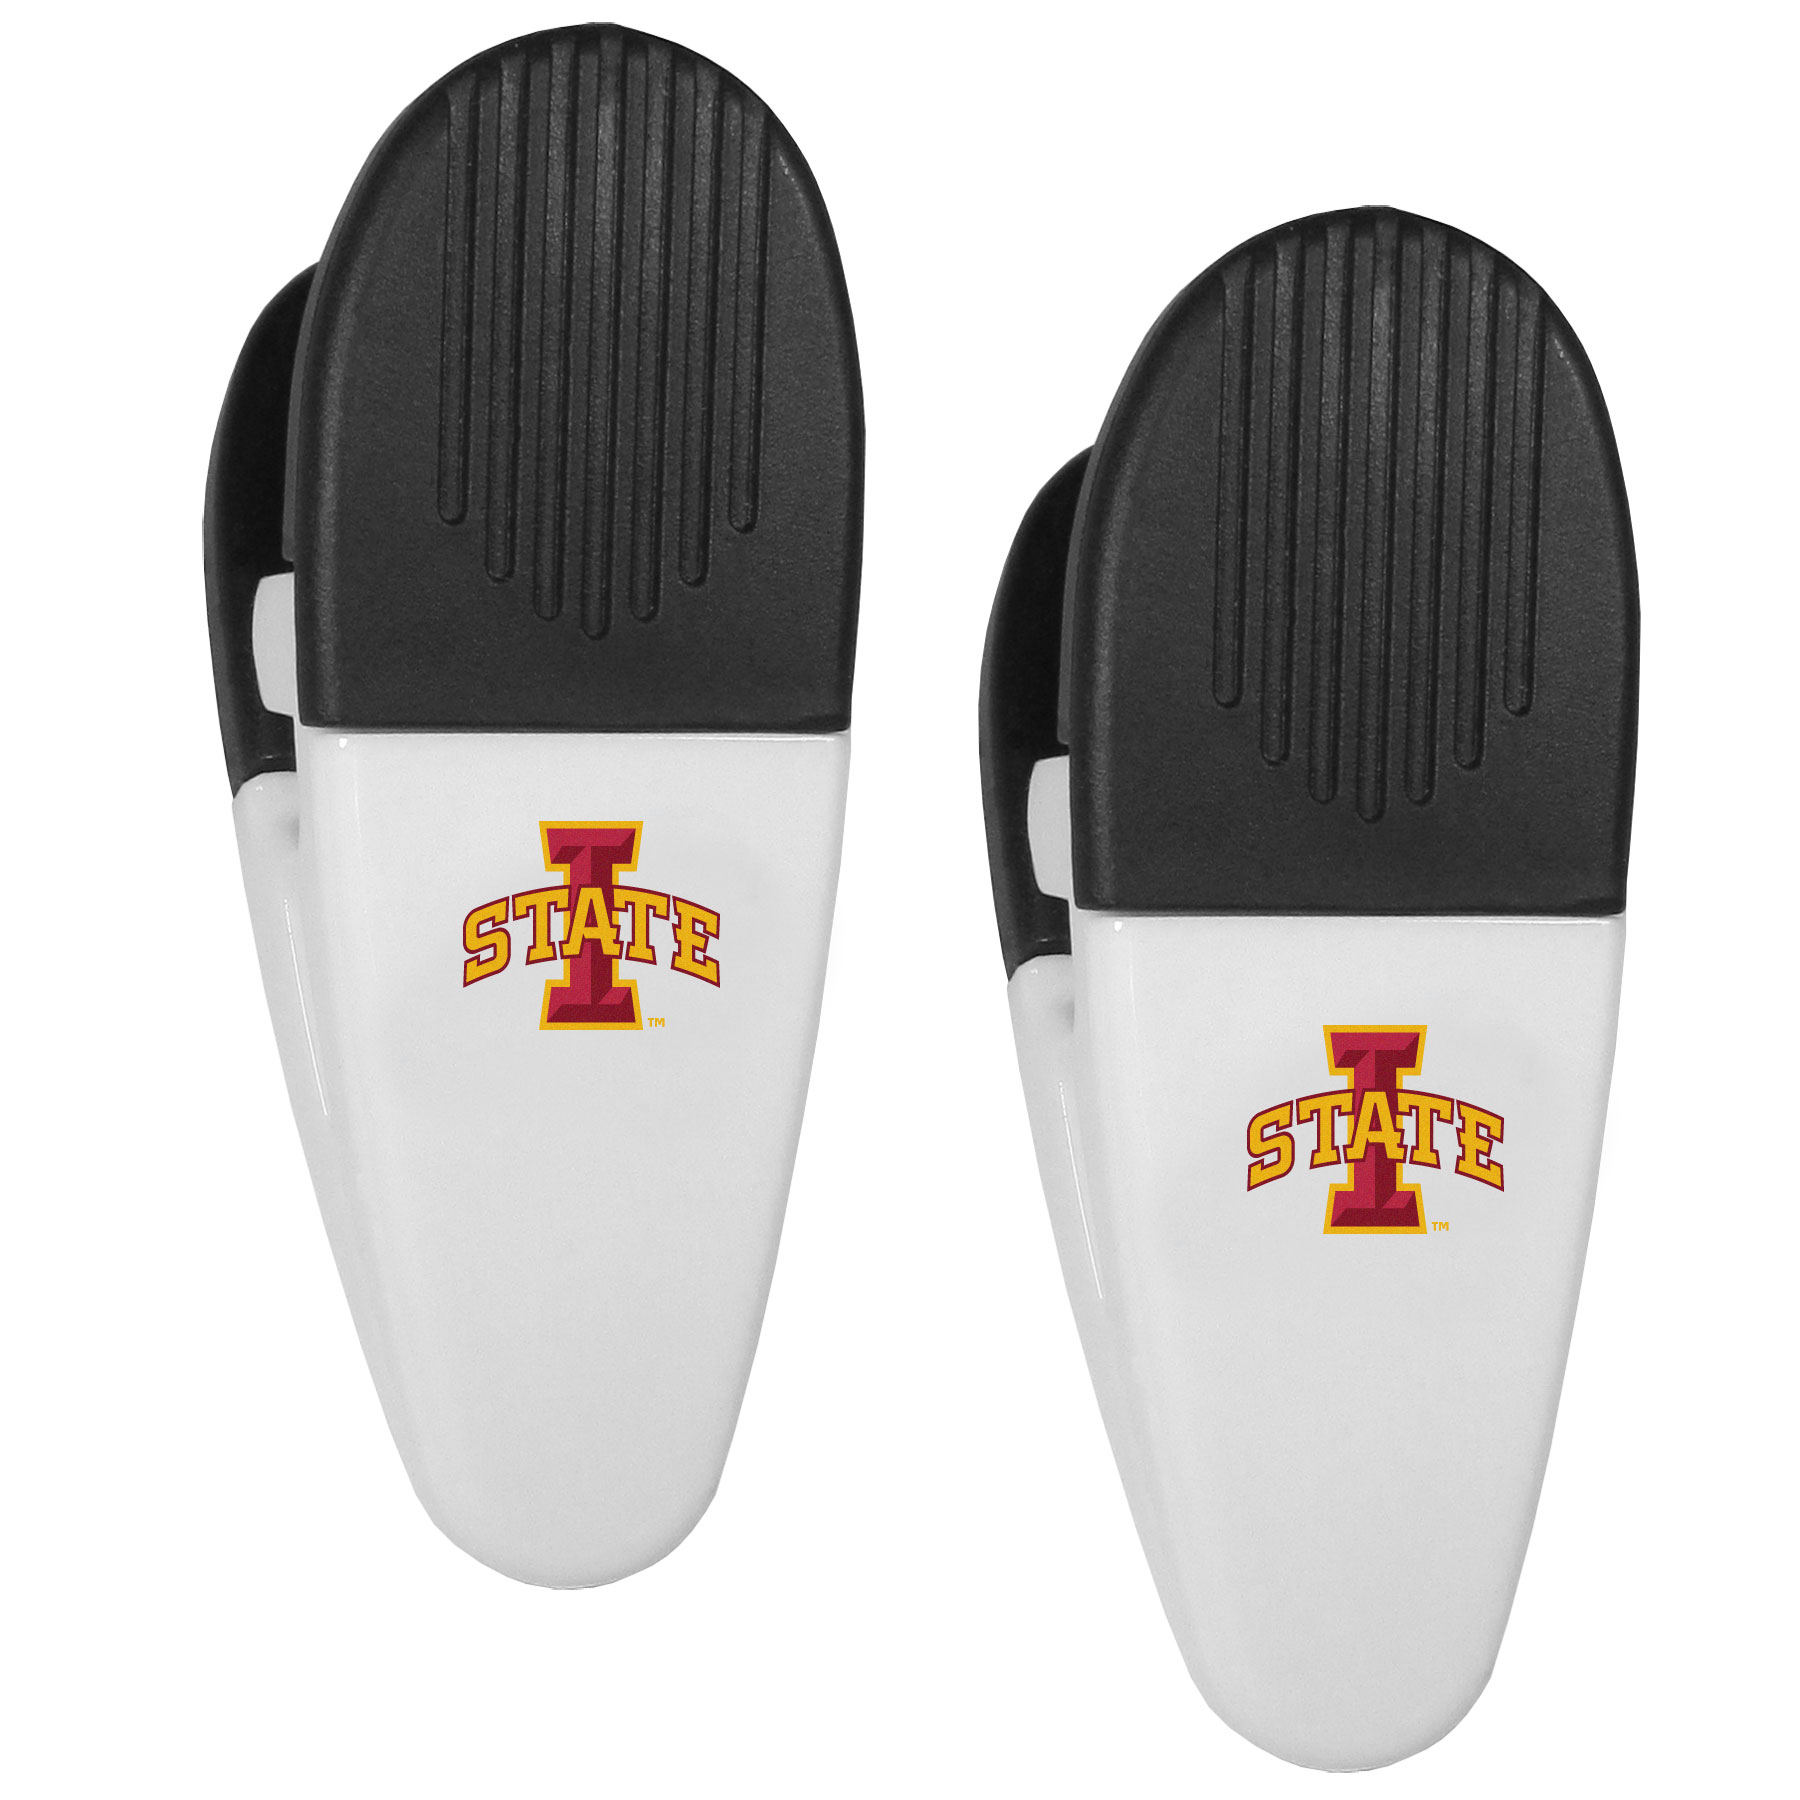 Iowa St. Cyclones Mini Chip Clip Magnets, 2 pk - Our Iowa St. Cyclones chip clip magnets feature a crisp team logo on the front of the clip. The clip is perfect for sealing chips for freshness and with the powerful magnet on the back it can be used to attach notes to the fridge or hanging your child's artwork. Set of 2 magnet clips, each clip is 3.5 inches tall and 1.25 inch wide.